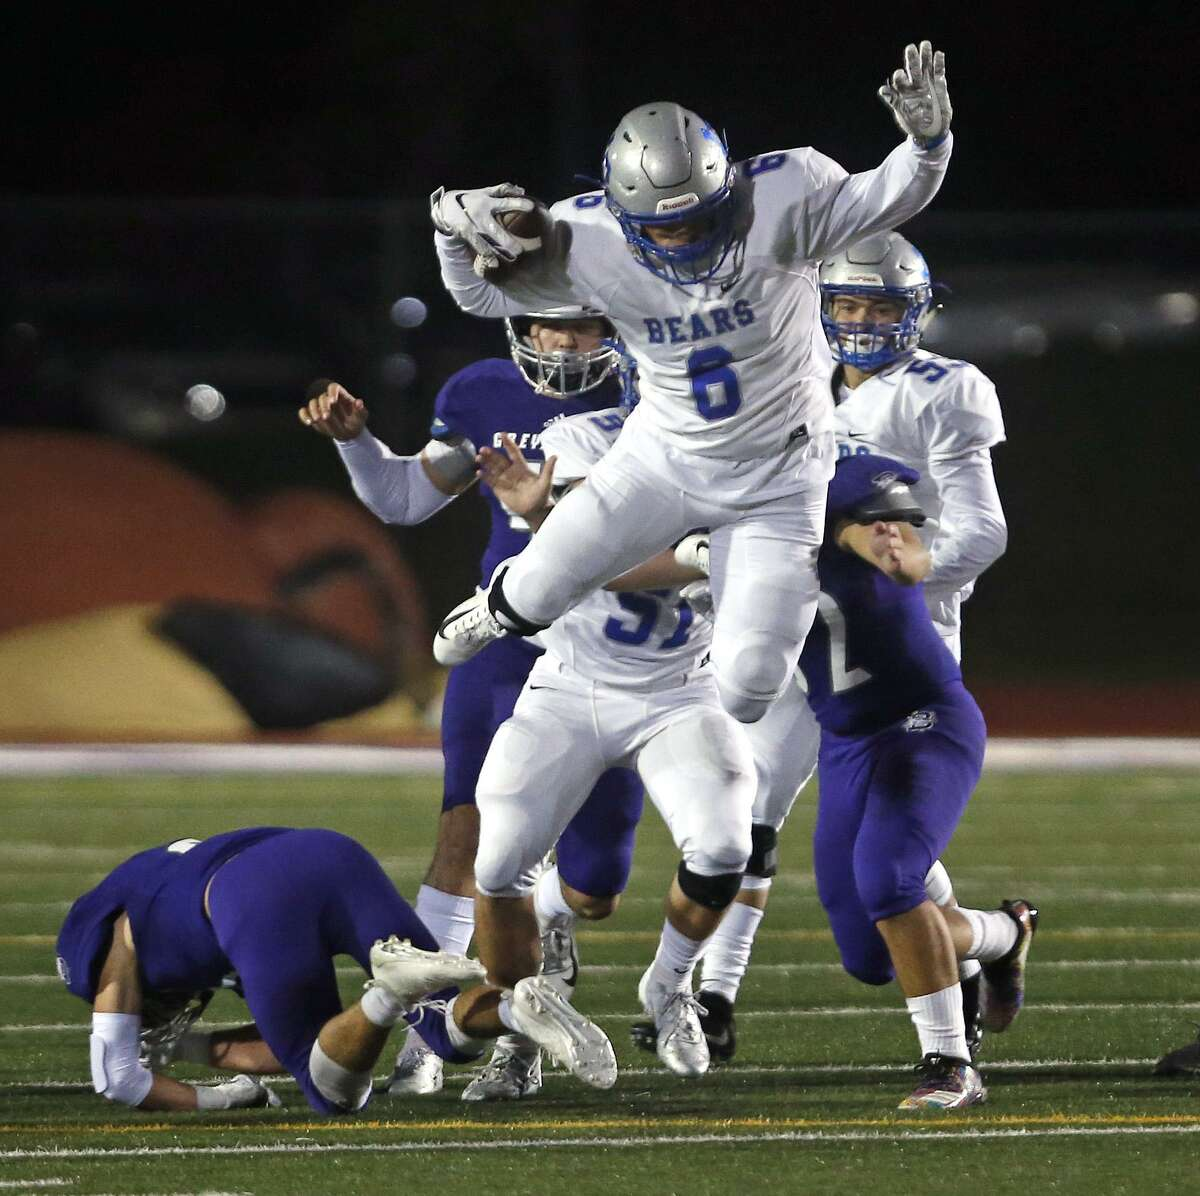 18. La Vernia Bears Record: 8-14A-1 Region IV District 15 Opponents with a winning record: 5Week 10 result: L - Lost to Boerne 46-45